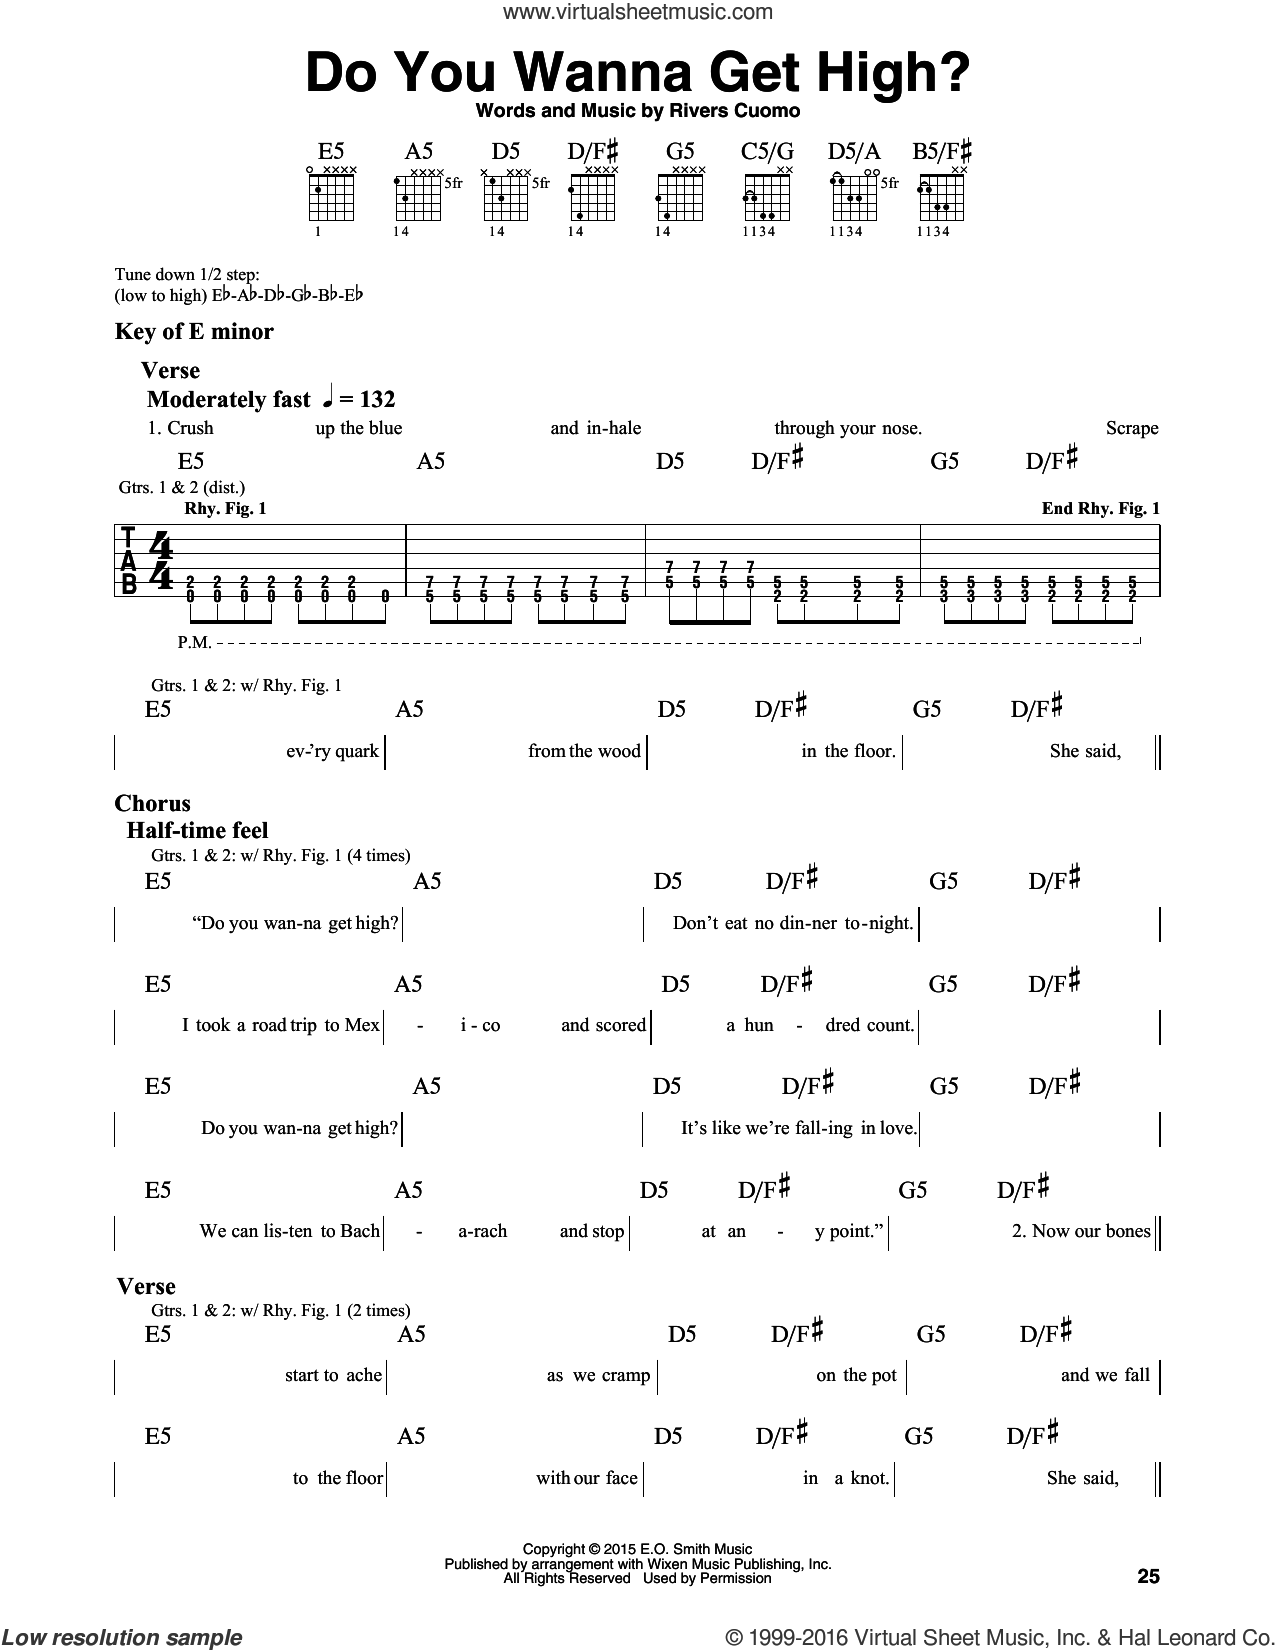 Do You Wanna Get High? sheet music for guitar solo (lead sheet) by Weezer. Score Image Preview.